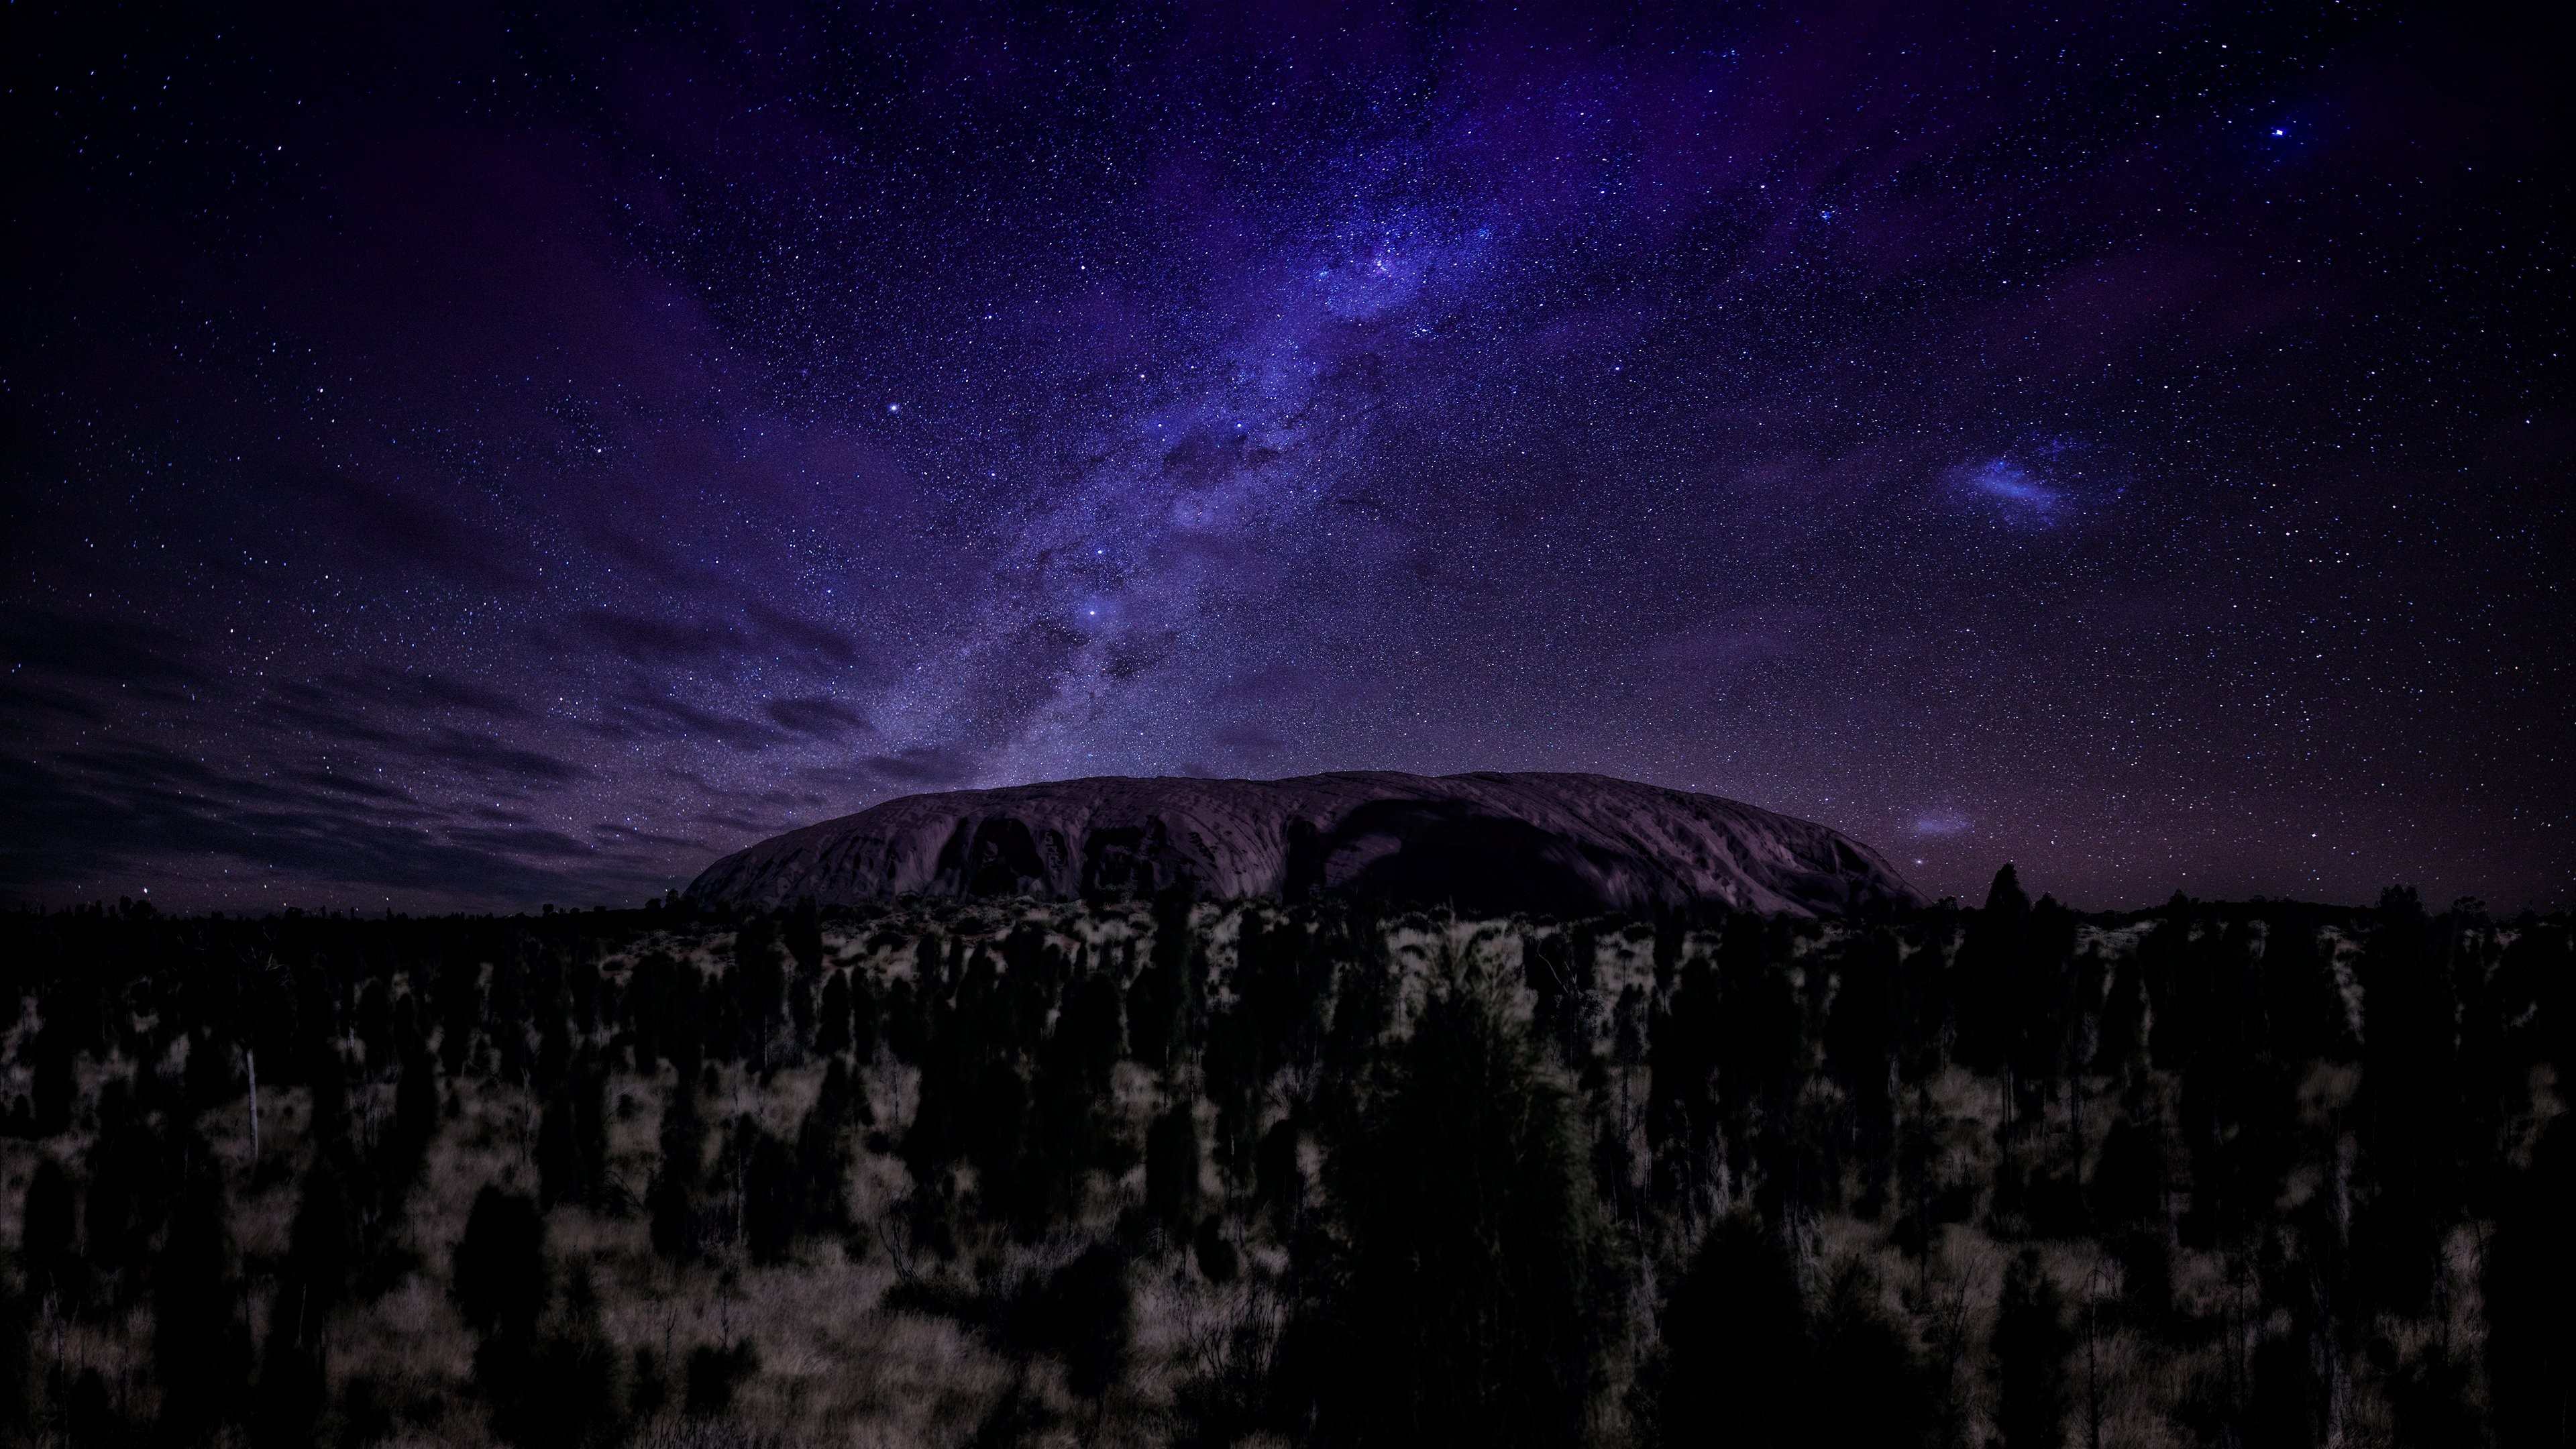 Alien Desktop Wallpaper Hd Wallpaper Ayers 5k 4k Wallpaper Mountains Night Stars